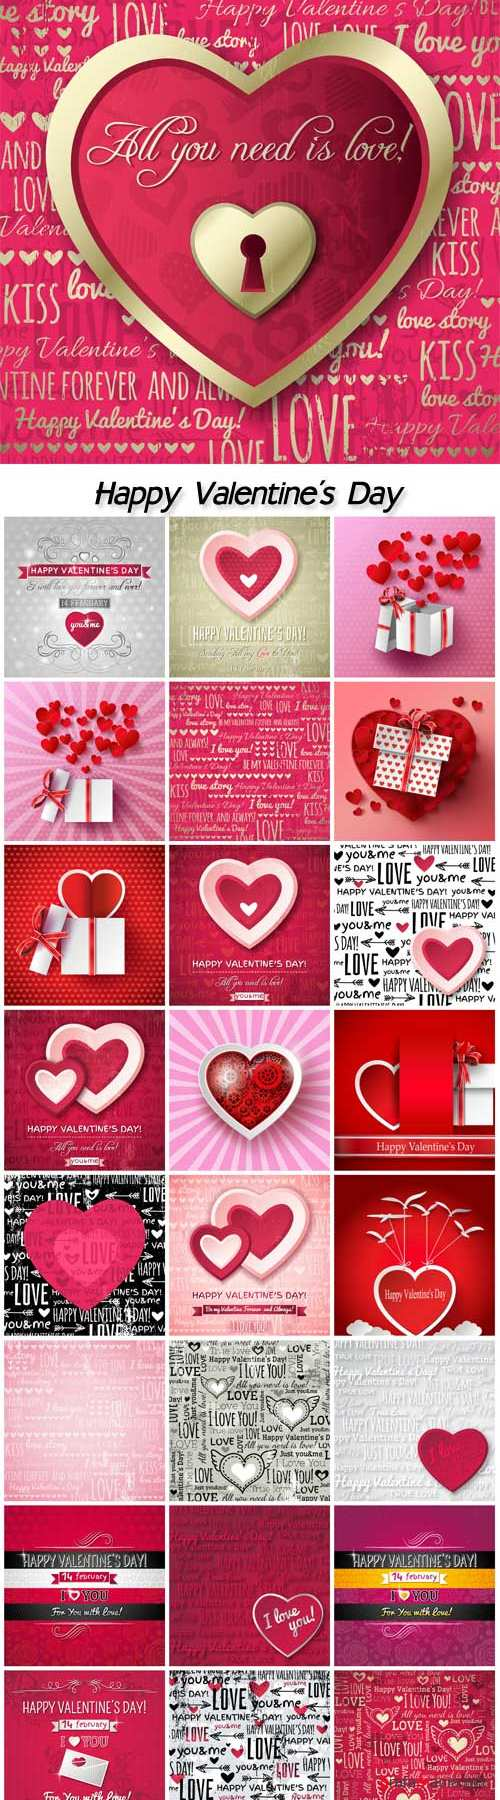 Happy Valentine's Day, hearts, gift wrap, backgrounds vector